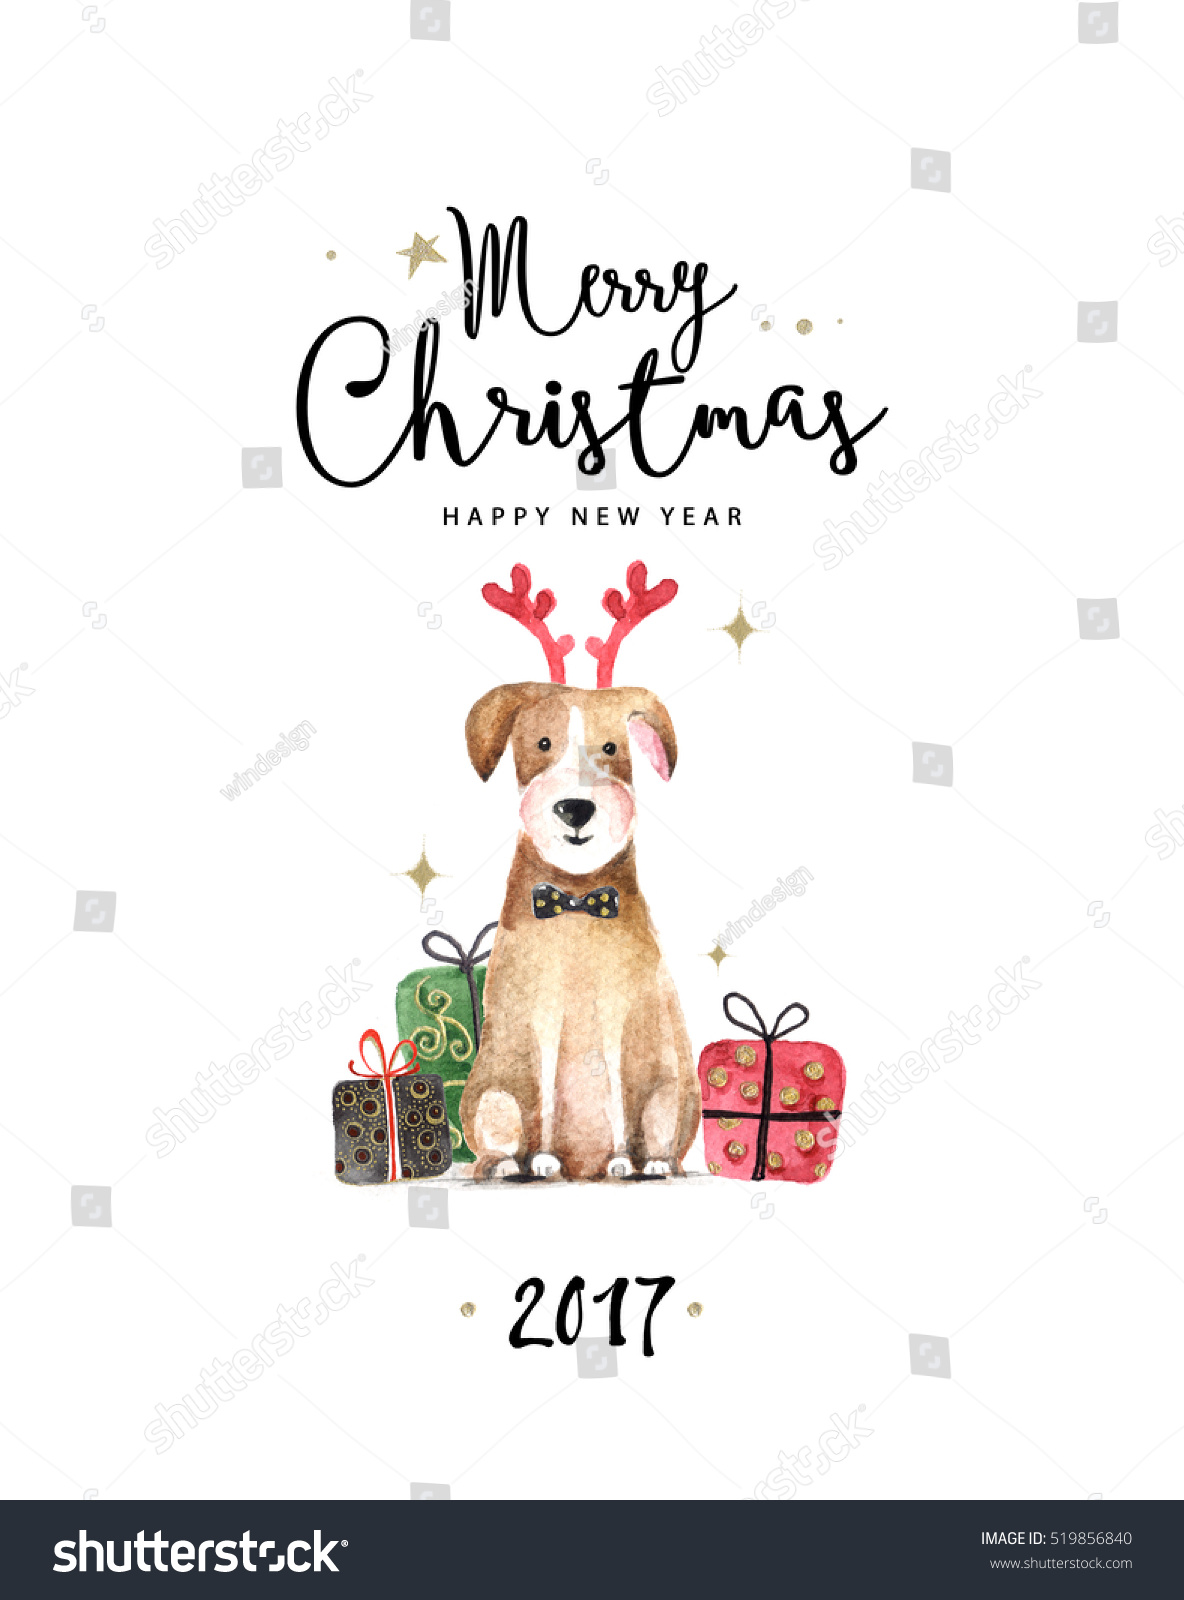 merry christmas and happy new year illustration watercolor illustration of dog